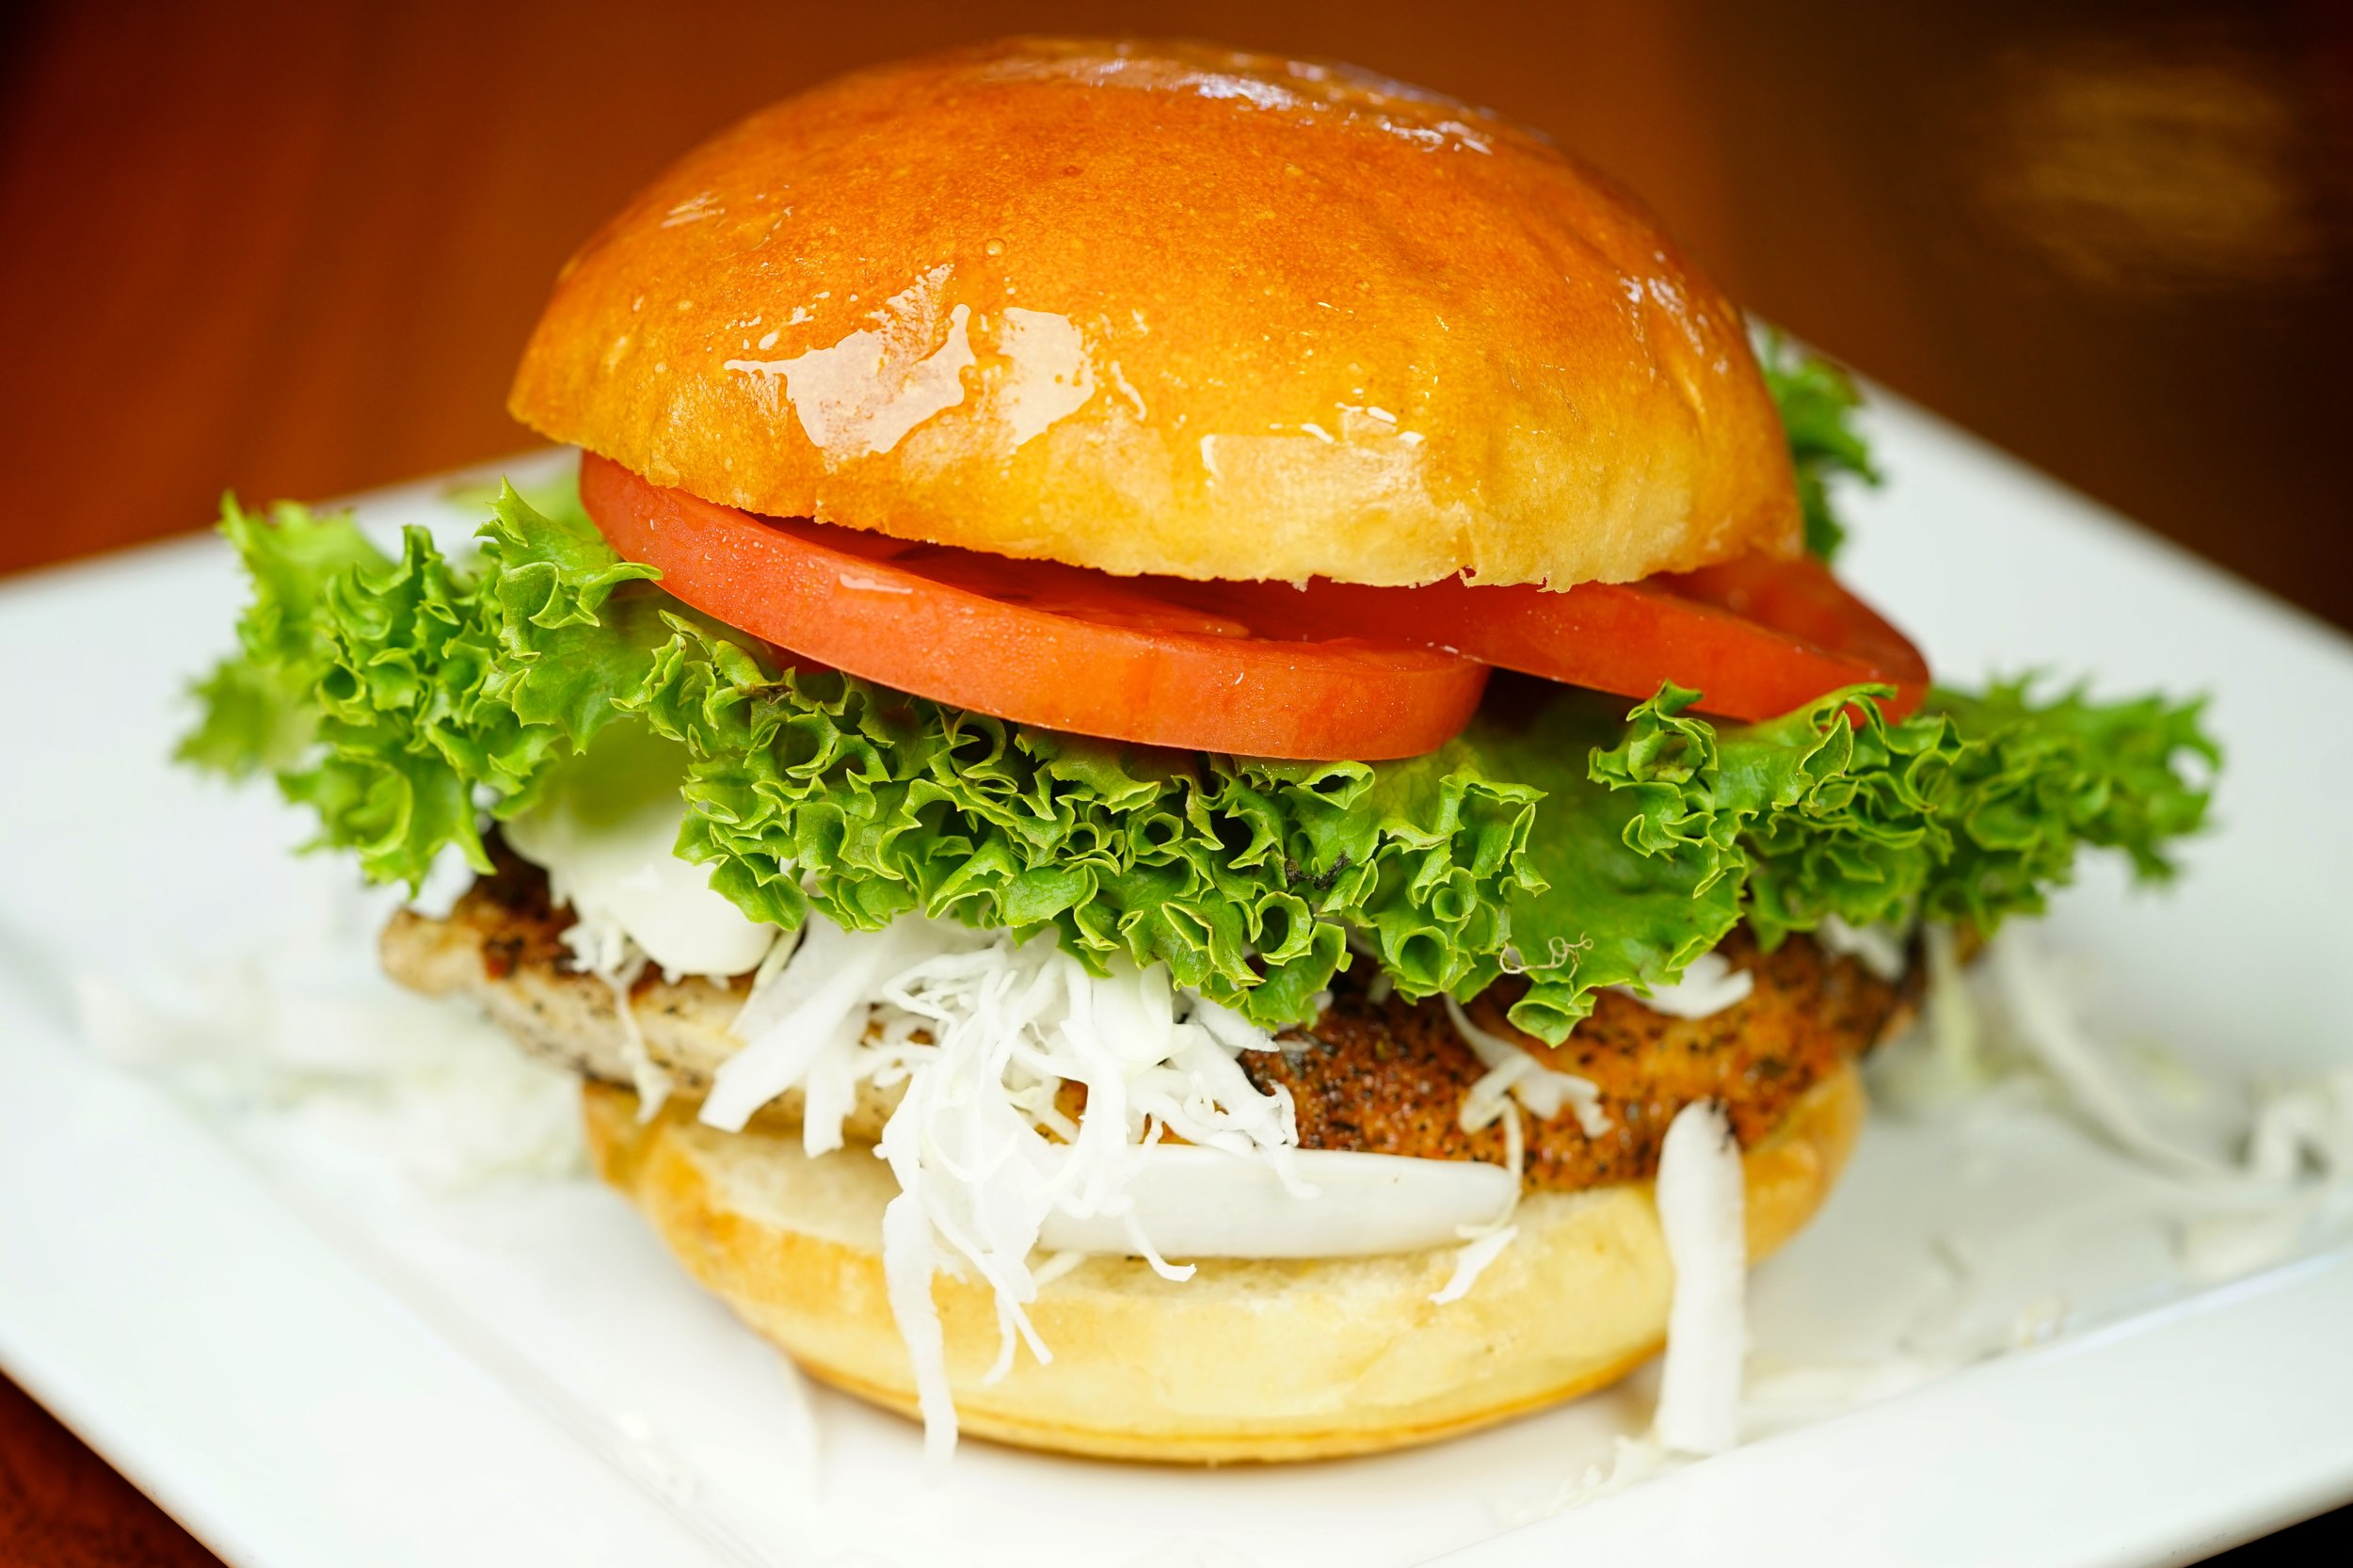 Baja Fish Sandwich - Served with shredded cabbage and our 'Kicked up' citrus jalapeno sauce. (lettuce & tomato optional)